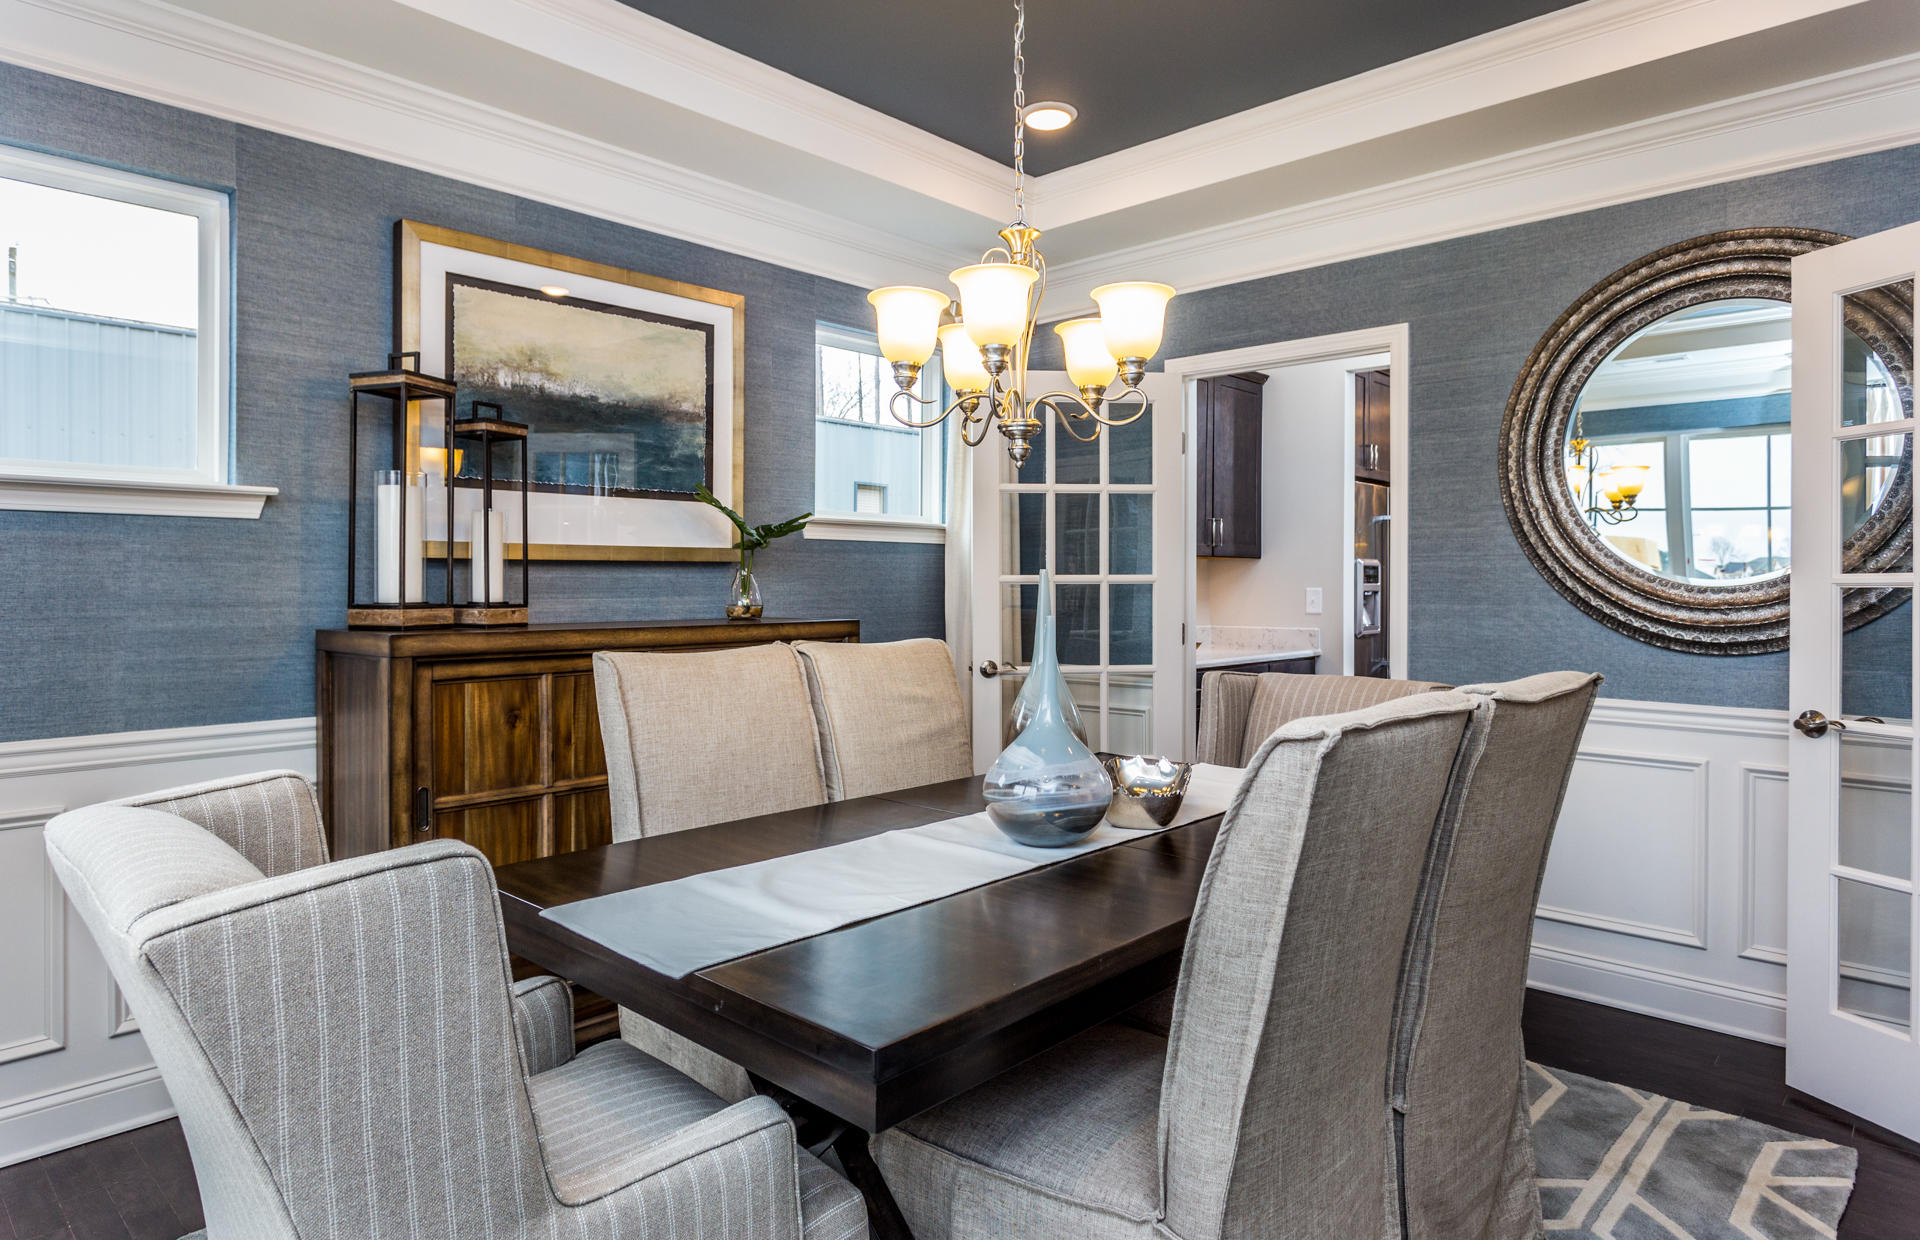 Oaks at Sears Farm by Pulte Homes image 0